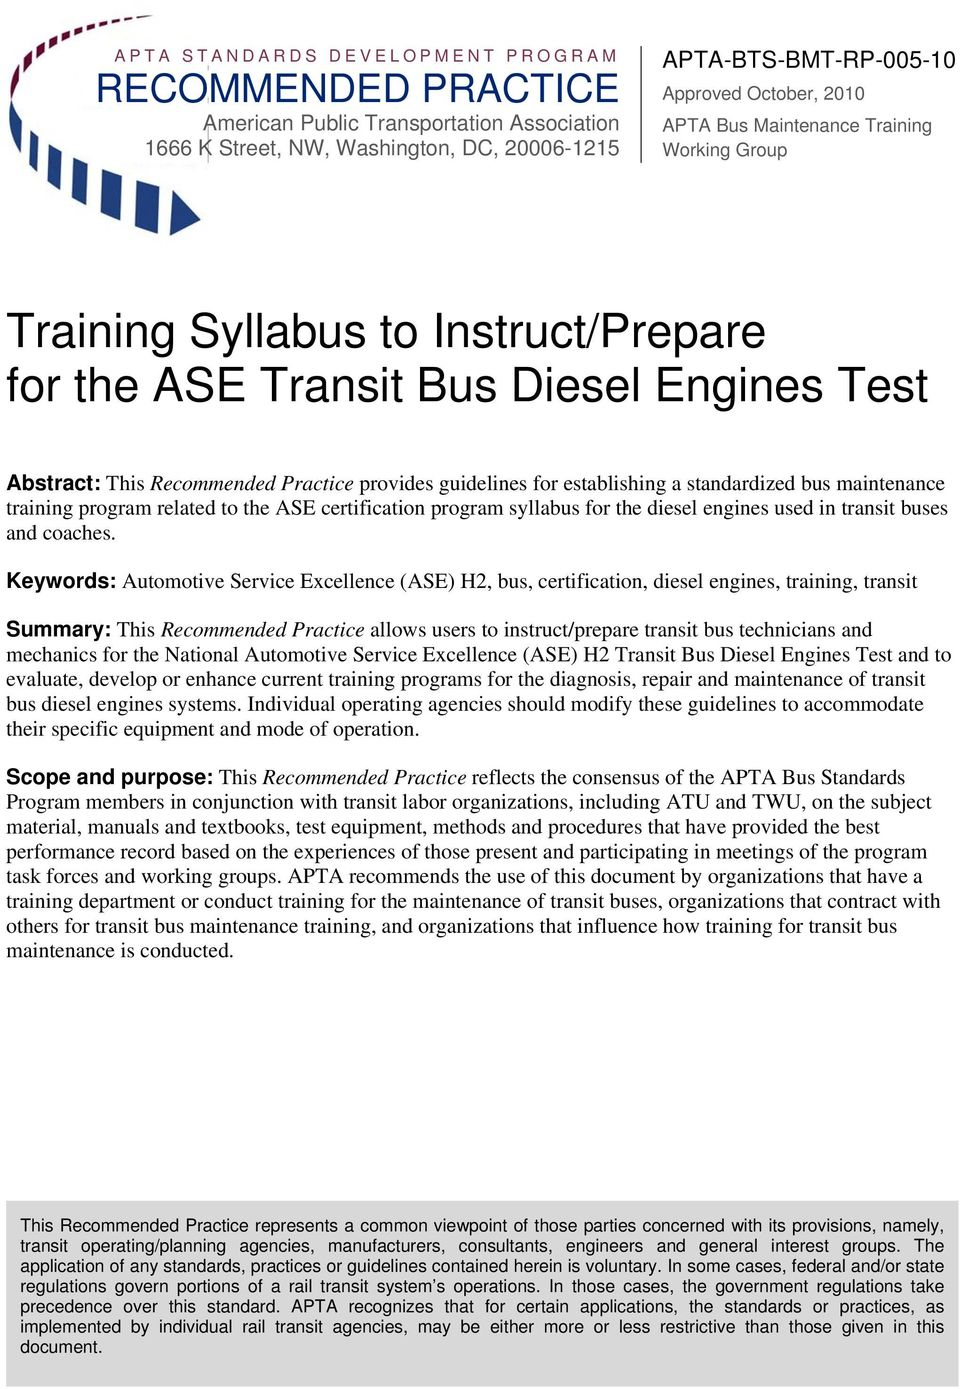 bus maintenance training program related to the ASE certification program syllabus for the diesel engines used in transit buses and coaches.